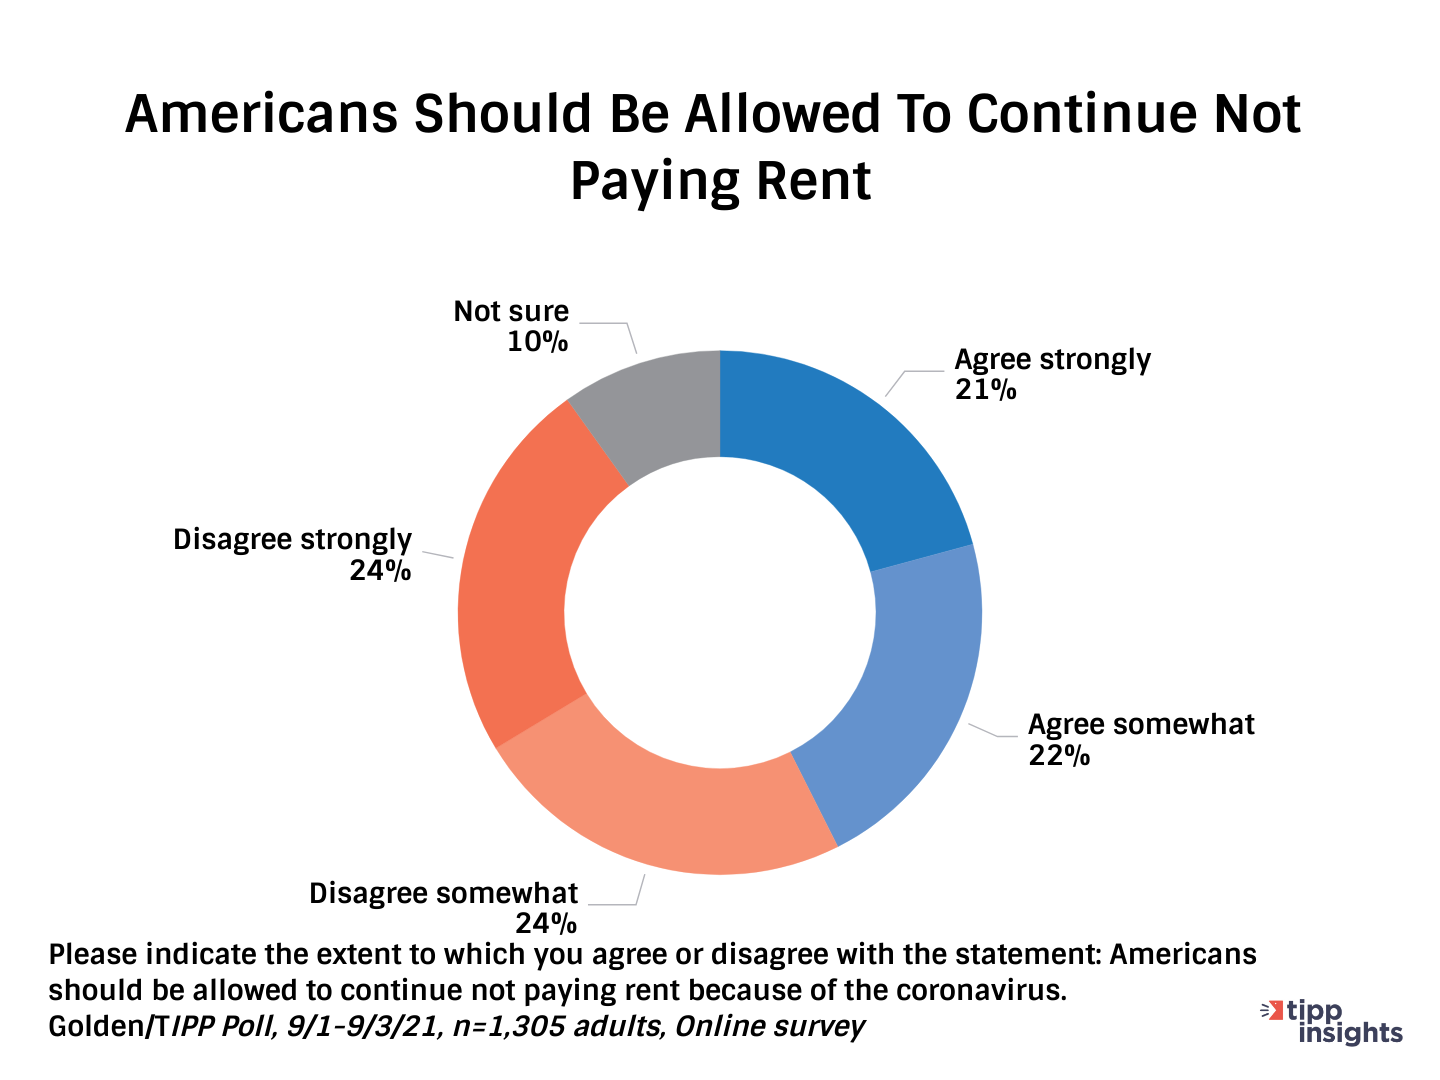 TIPP/Golden Poll Results: Should Americans be allowed to continue not paying rent?